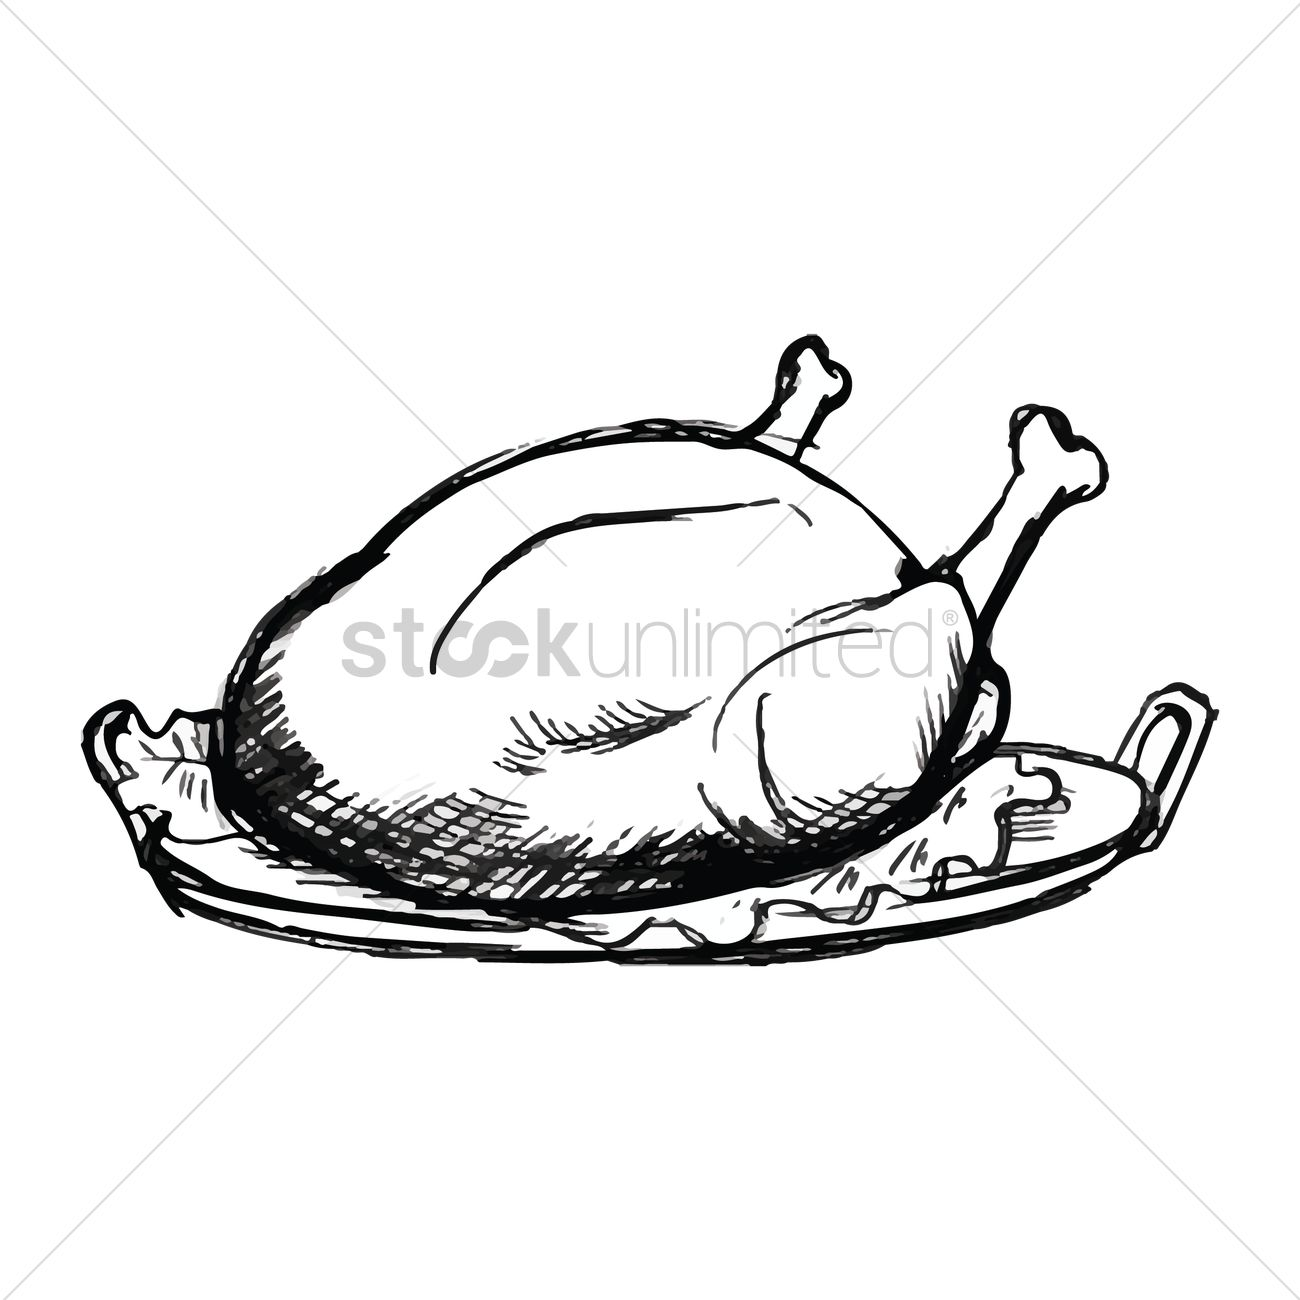 1300x1300 Roasted Chicken Vector Image